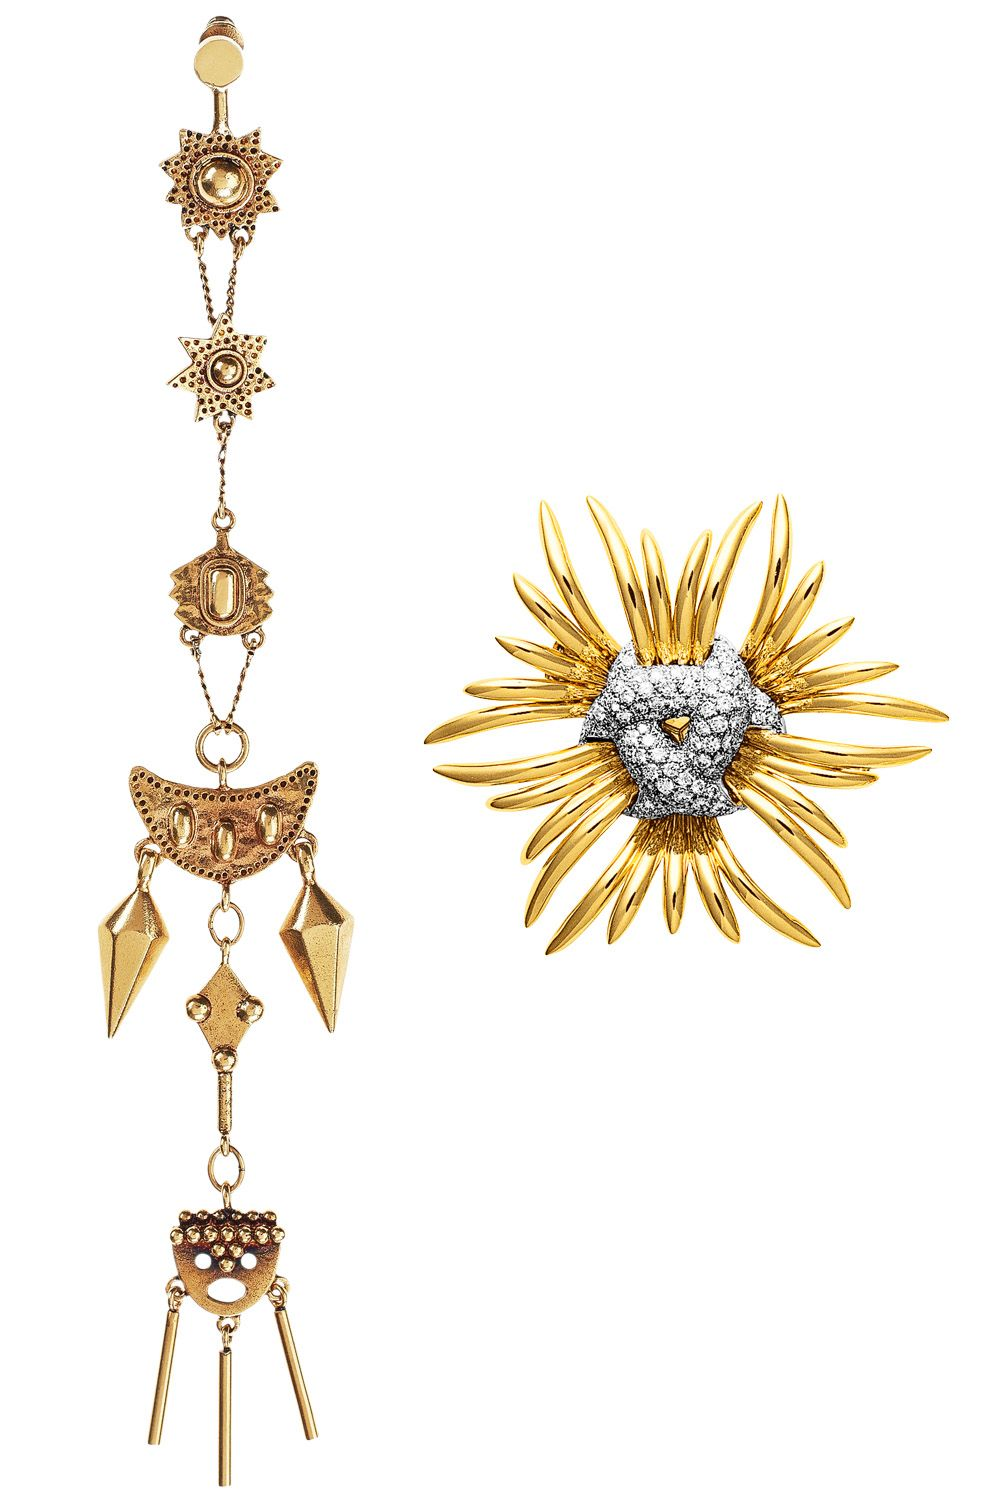 "<p>Get noticed in blue with gold jewelry, like a sparkling brooch or earring. <span class=""redactor-invisible-space"" data-verified=""redactor"" data-redactor-tag=""span"" data-redactor-class=""redactor-invisible-space""></span></p><p><em data-redactor-tag=""em"" data-verified=""redactor"">Chloé earring, $570, <a href=""http://www.shopbazaar.com/"" target=""_blank"">shopBAZAAR.com</a>; </em><em data-redactor-tag=""em"" data-verified=""redactor"">Verdura brooch, price upon request, 212-758-3388.</em></p>"